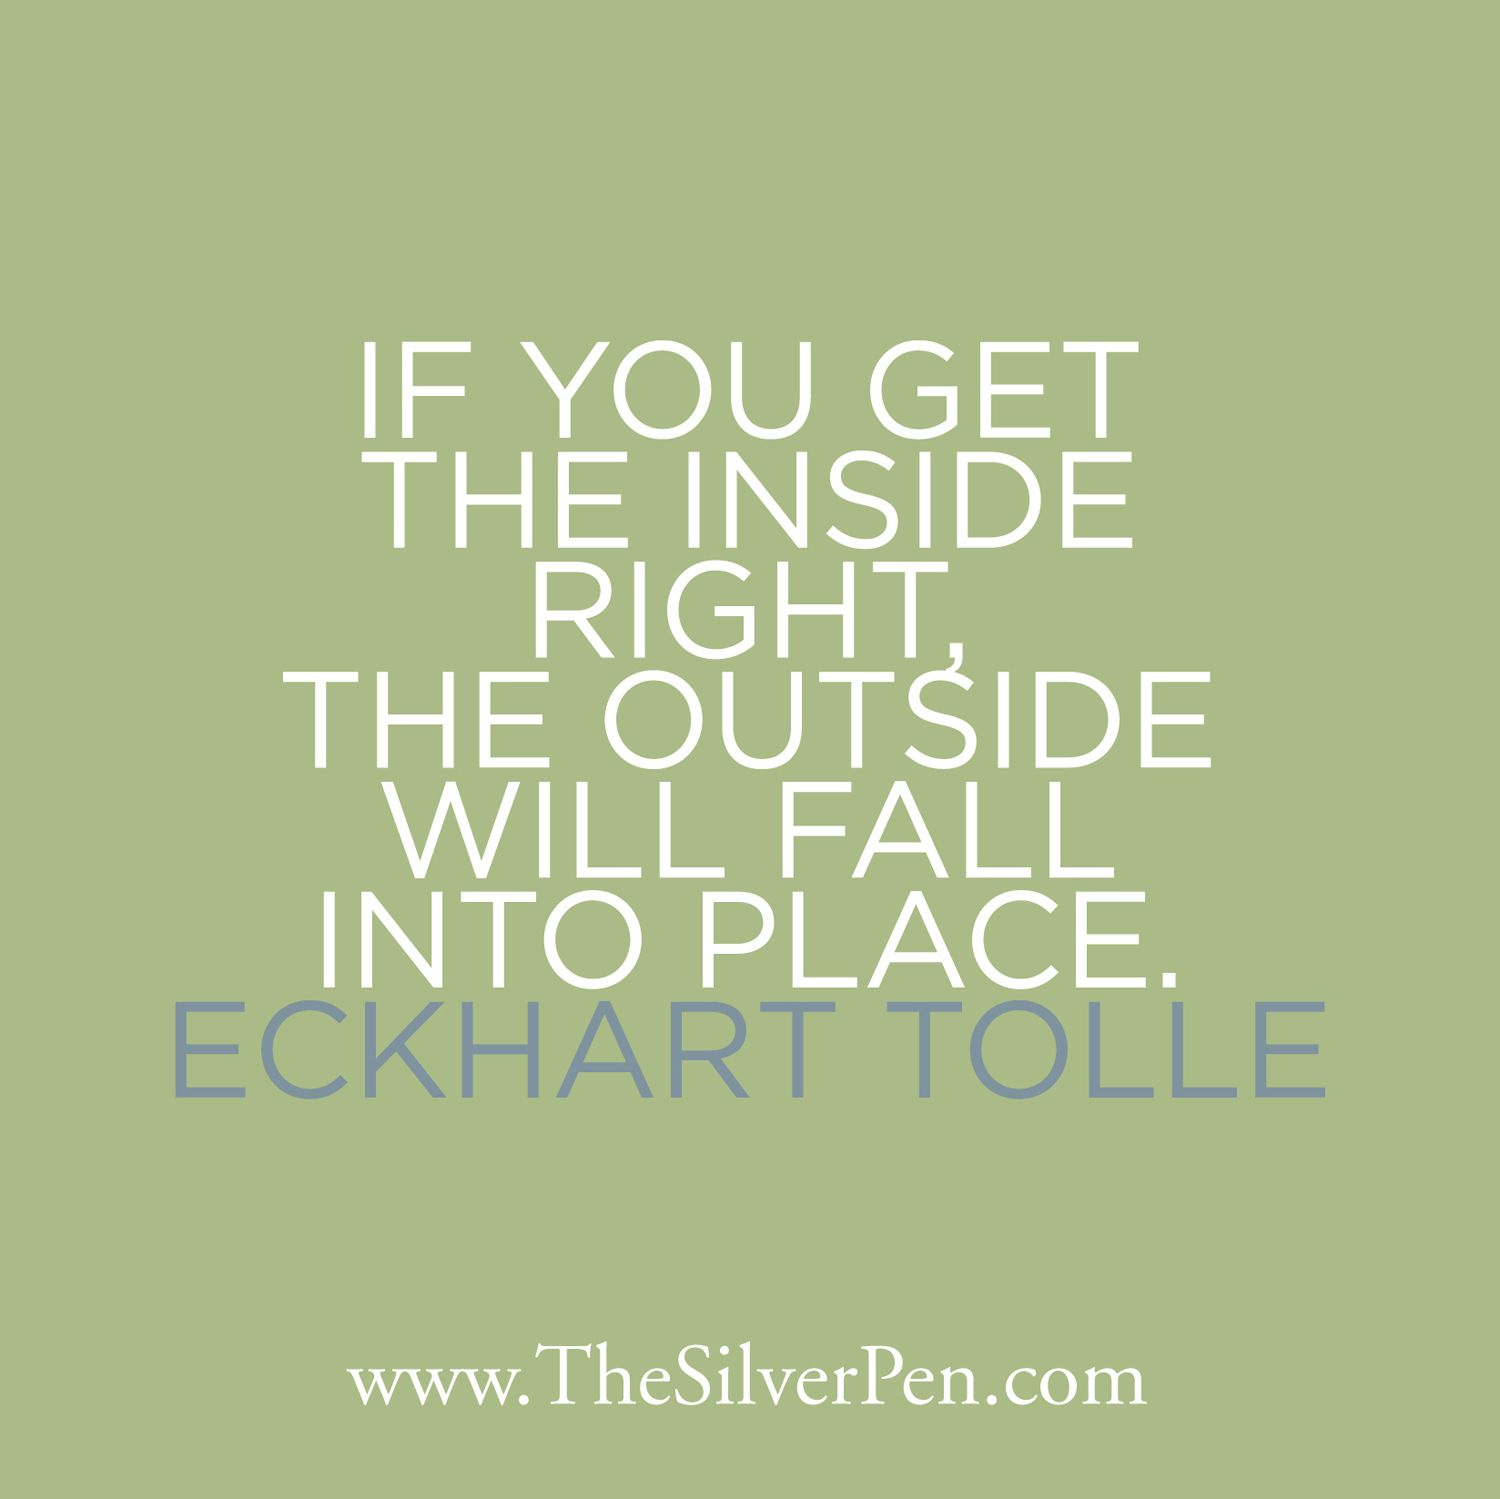 Quotes Eckhart Tolle: 25+ Inspiring Eckhart Tolle Quotes